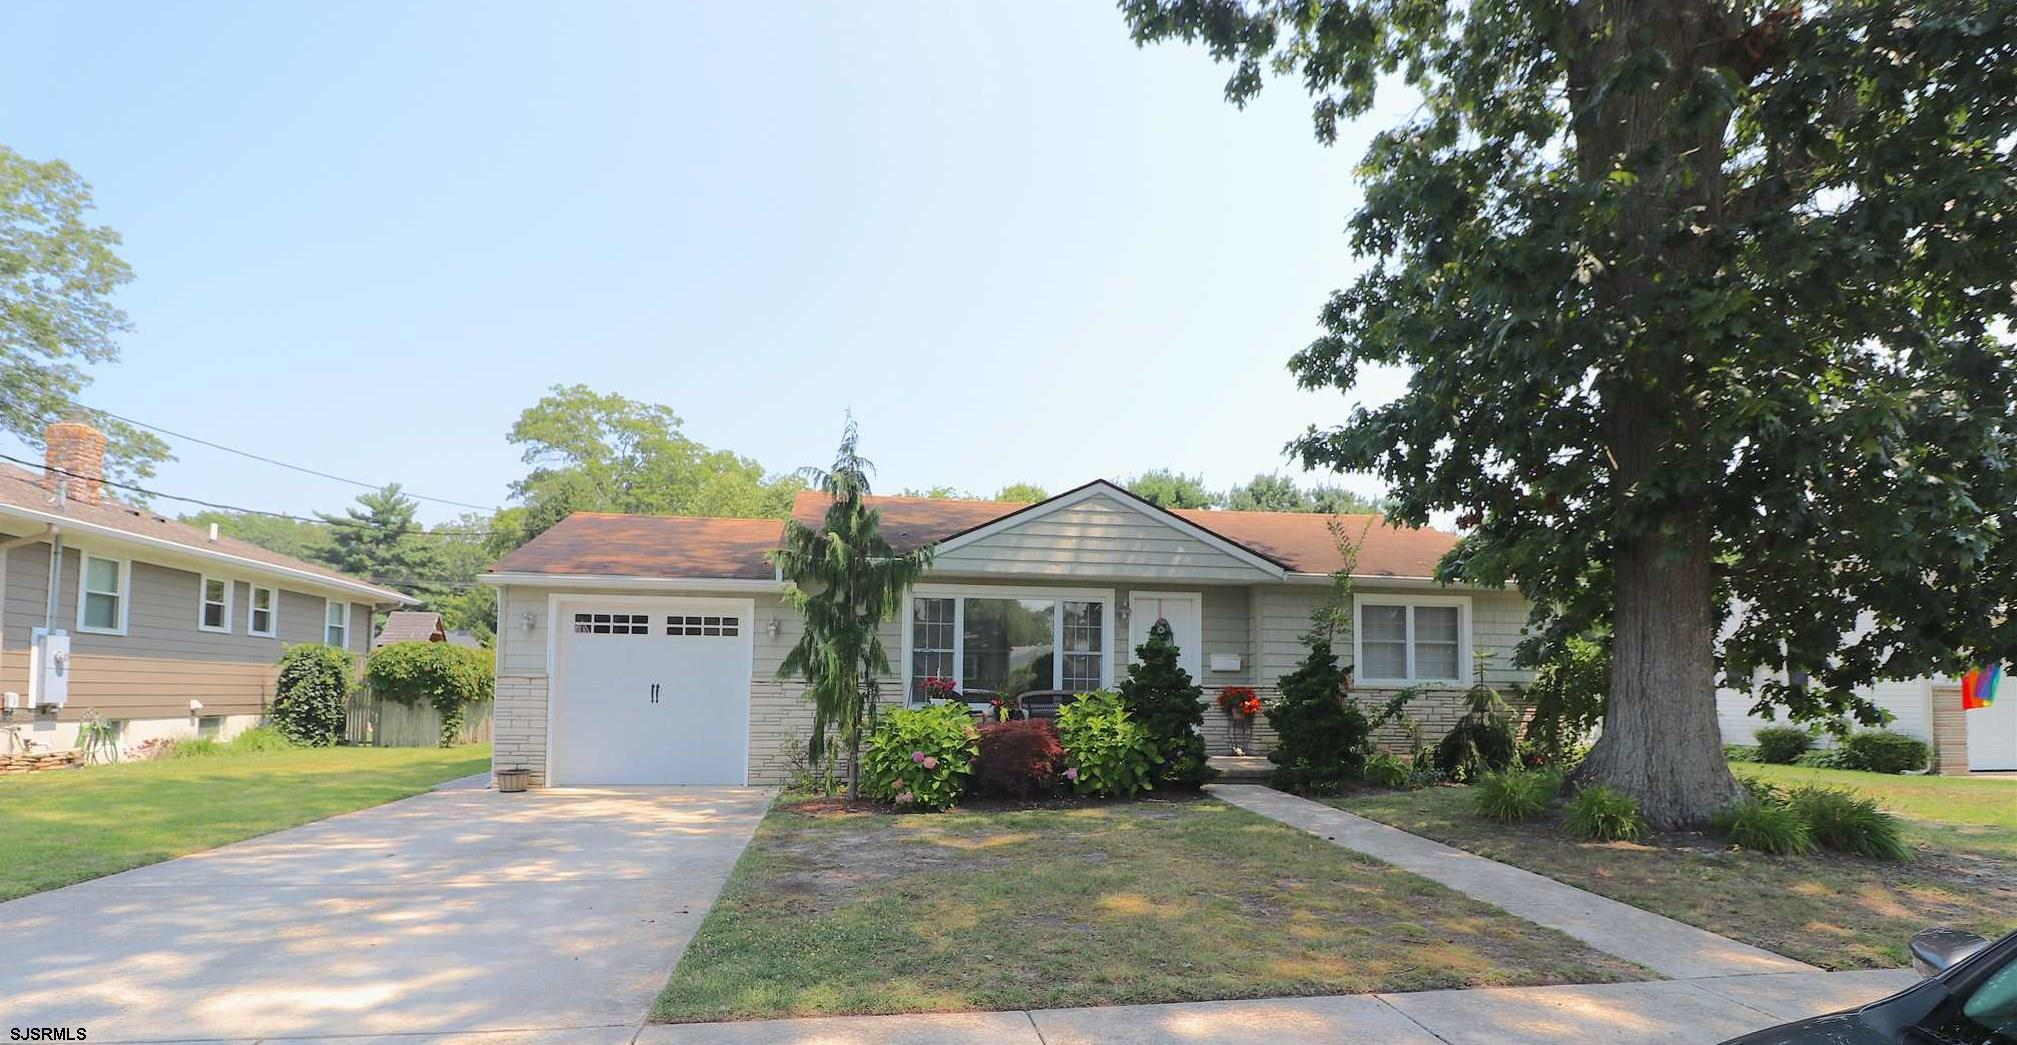 Picture Perfect 3BR home just a few houses from Northfield's beloved bikepath! Shaded front porch pe